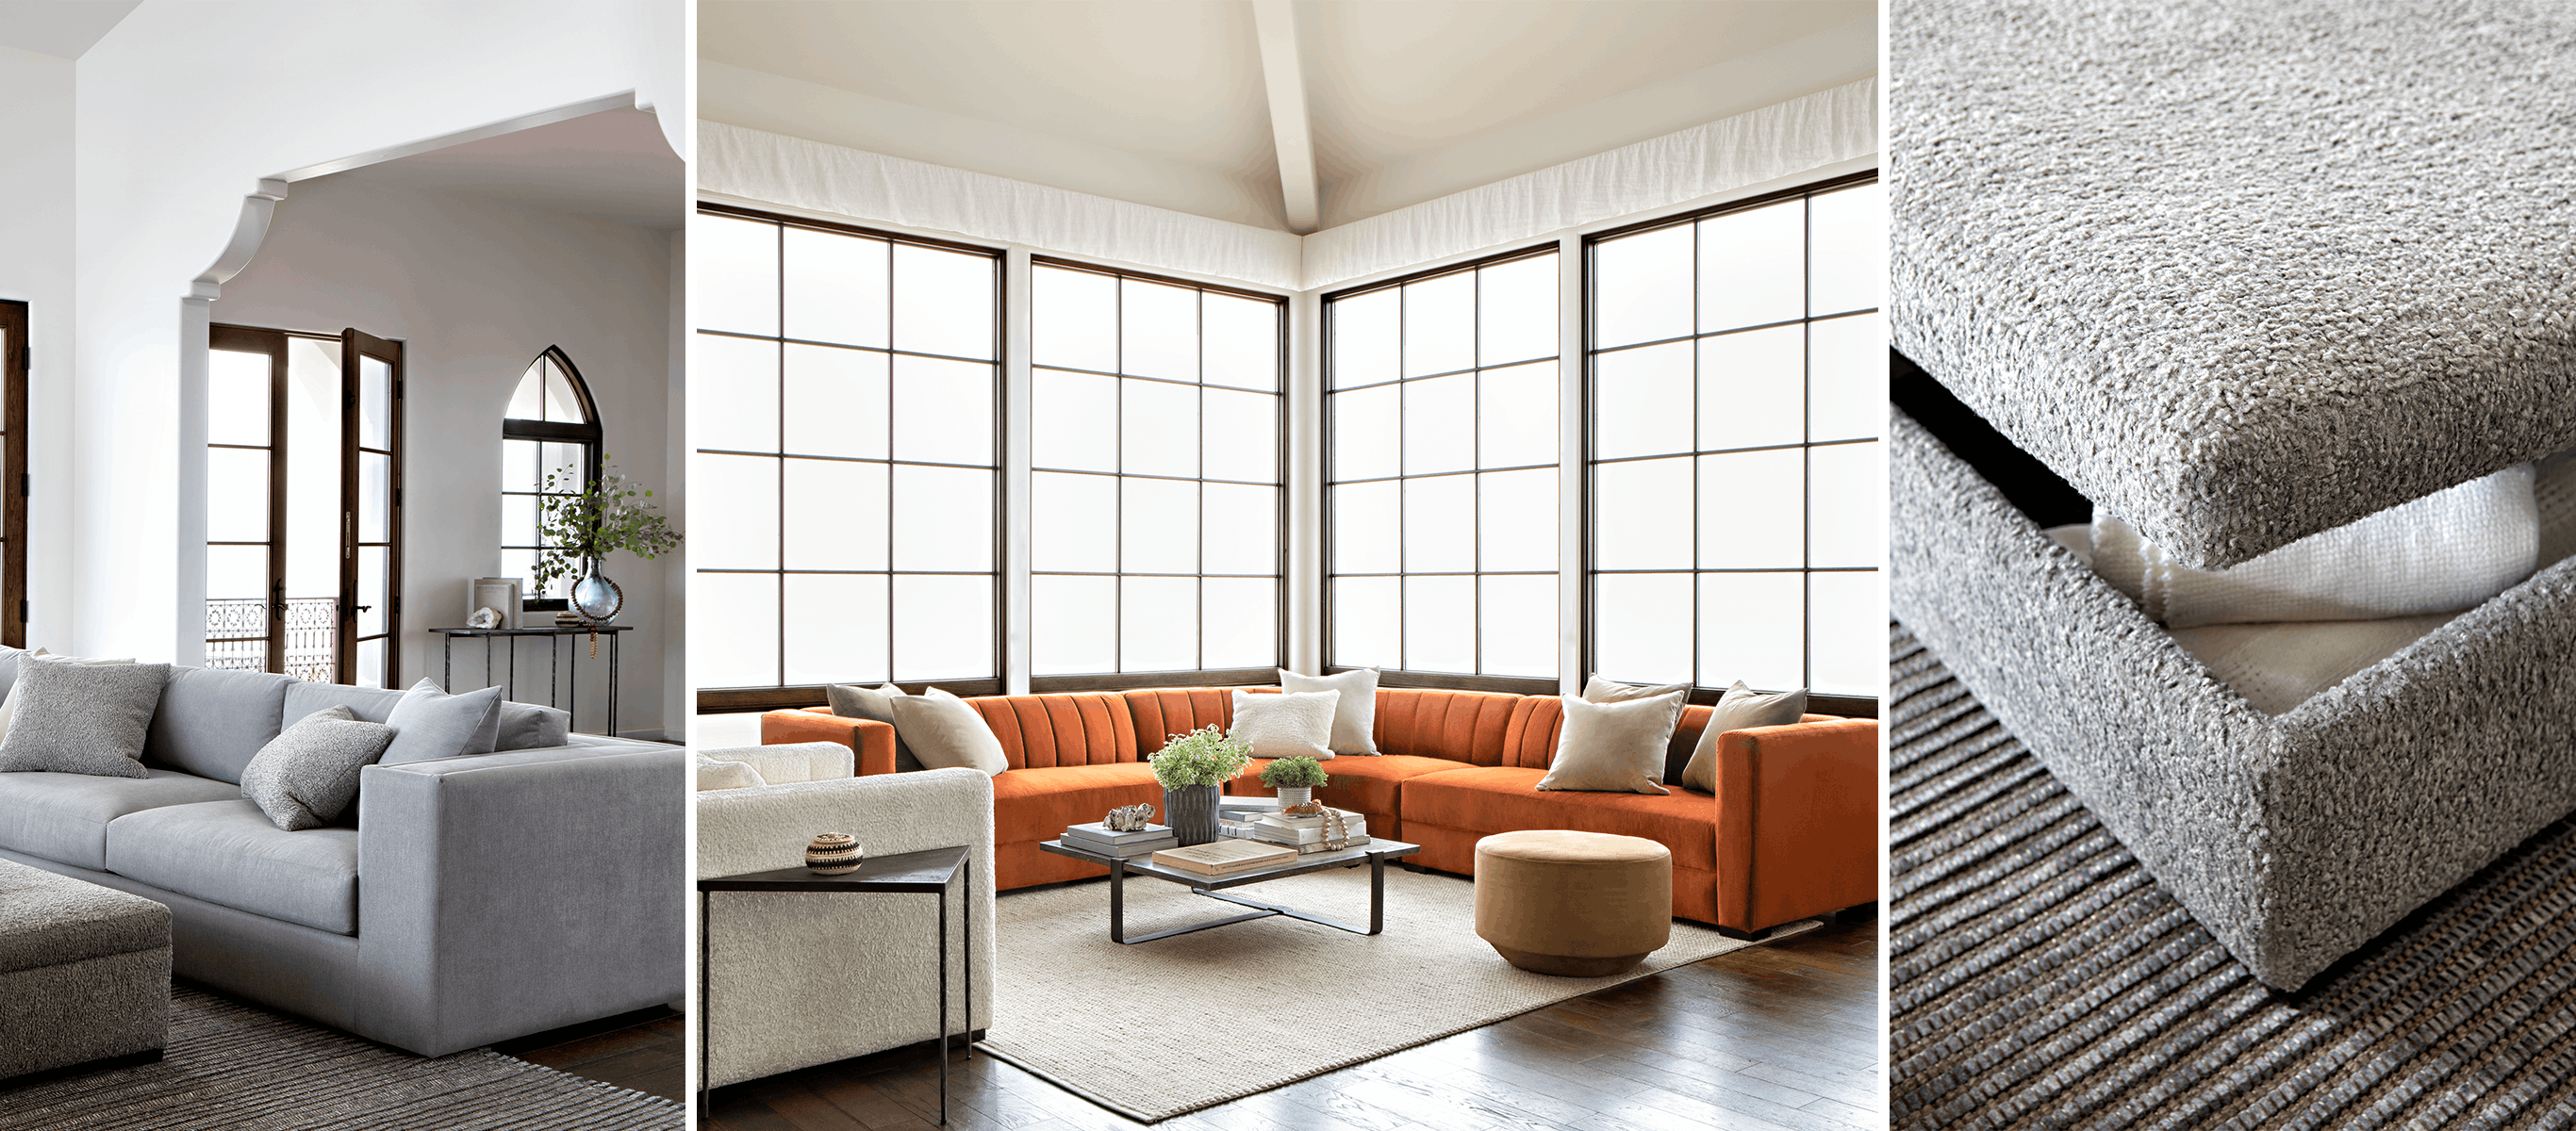 Whitley 3 Piece Sectionals By Nate Berkus And Jeremiah Brent Inside Preferred Nate Berkus Just Launched A Home Collection With Hubby Jeremiah (View 8 of 20)